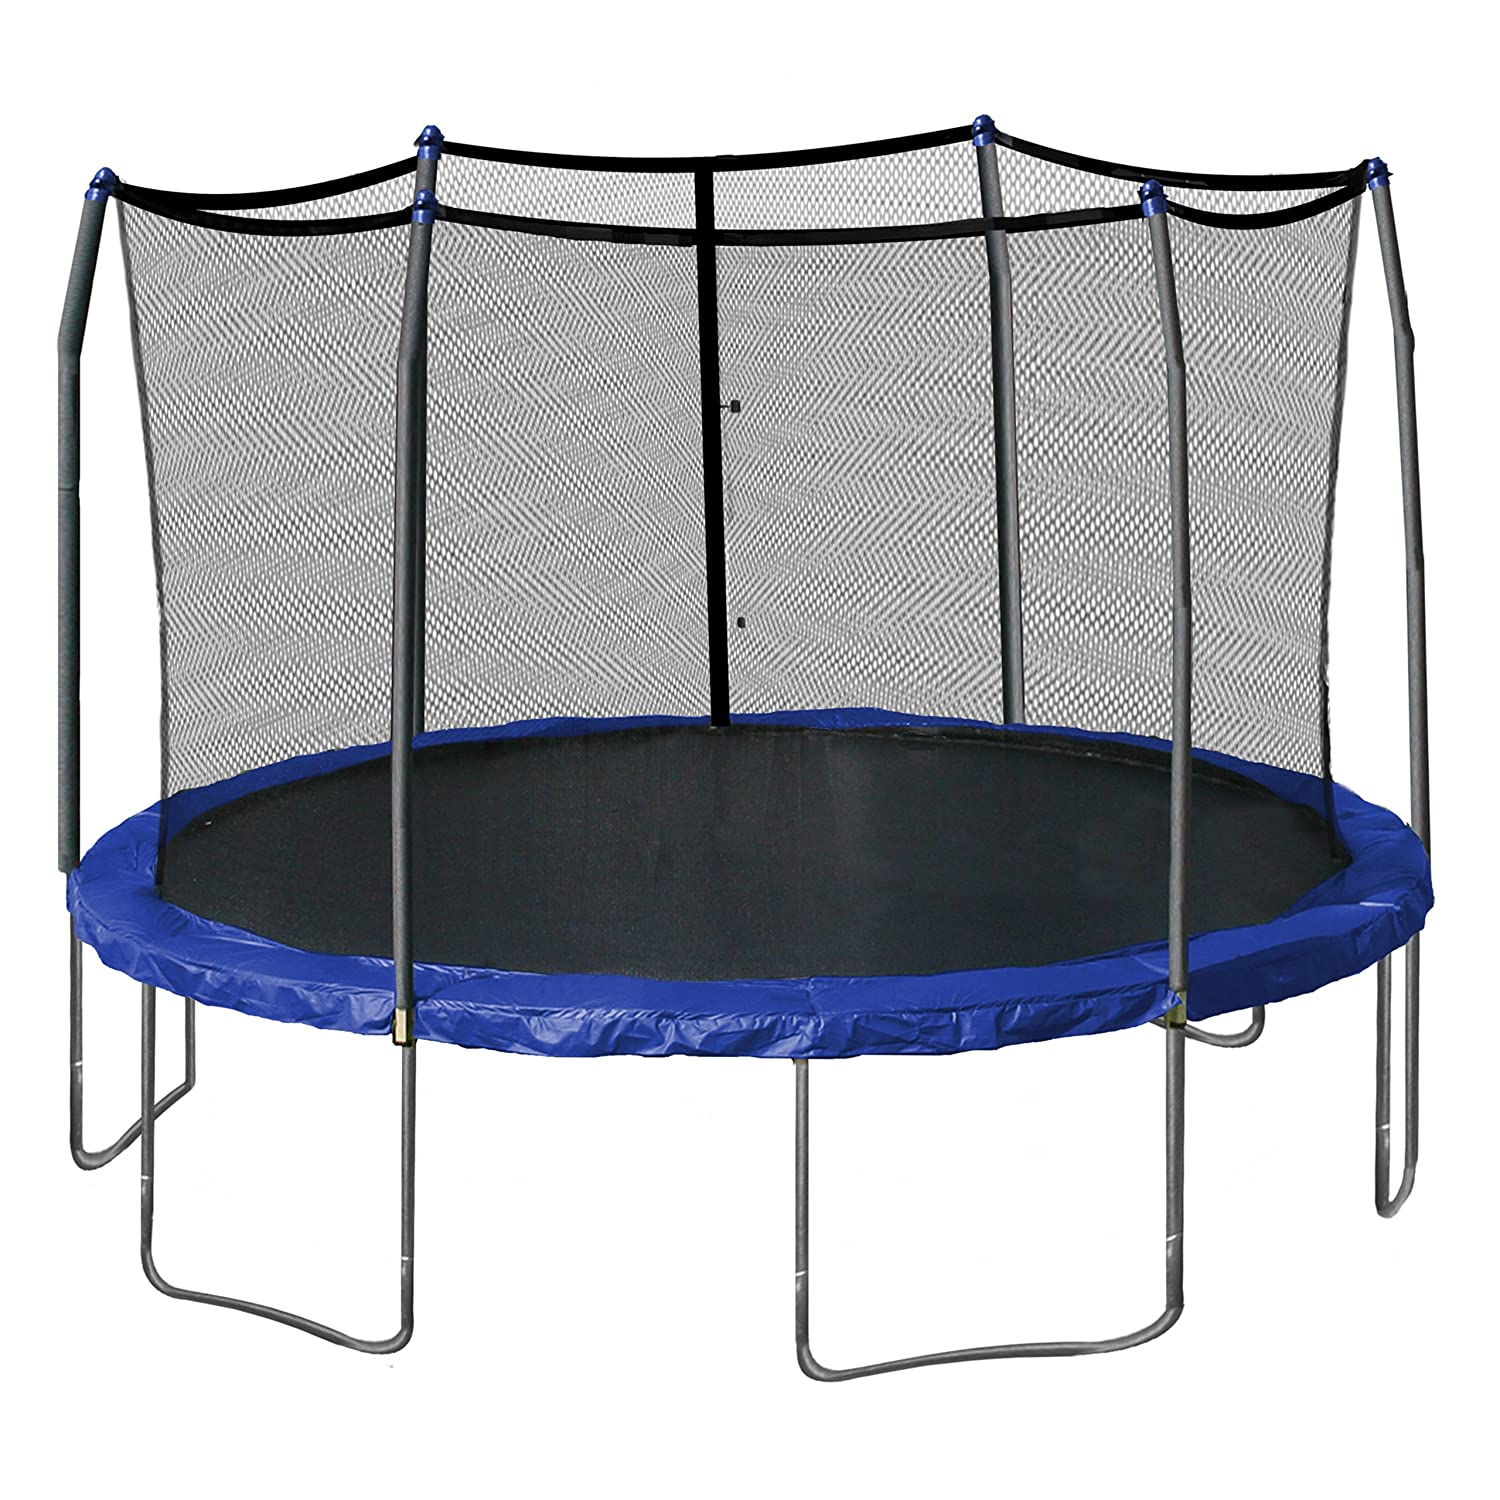 Kidwise Jumpfree 15 Ft Trampoline And Safety Enclosure: 50 Best And Safest Trampolines Of 2019: Guide & Reviews